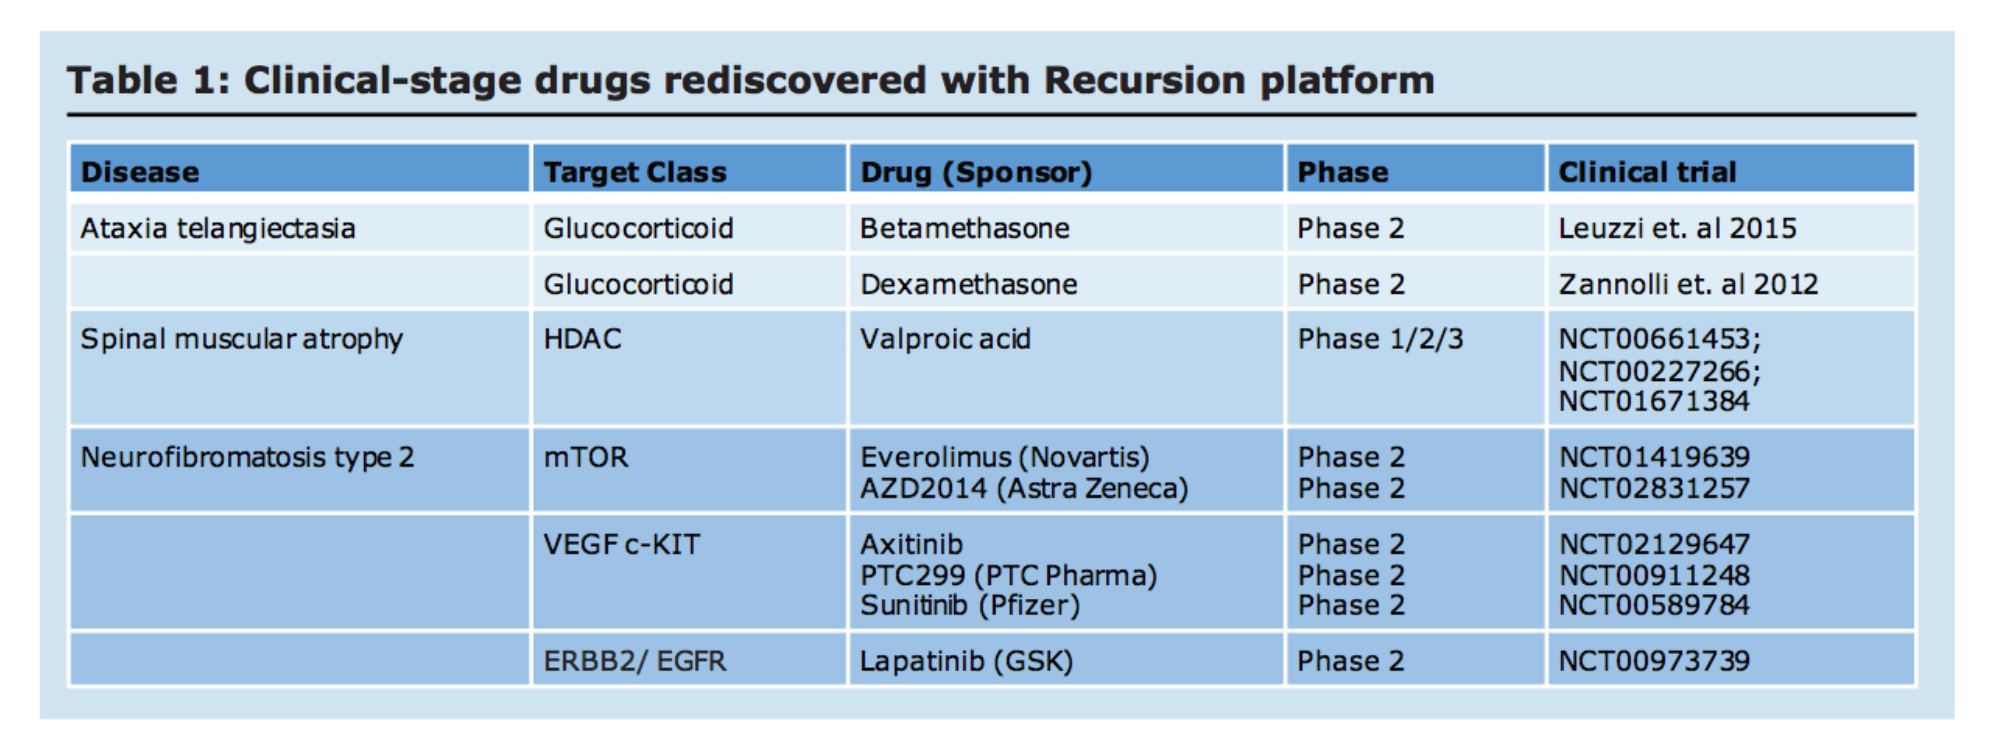 List of [*rediscovered clinical stage assets](https://recursionpharma.com/wp-content/uploads/2017/09/AI-Enabled_Pheno-9_25_2017v24.pdf)*